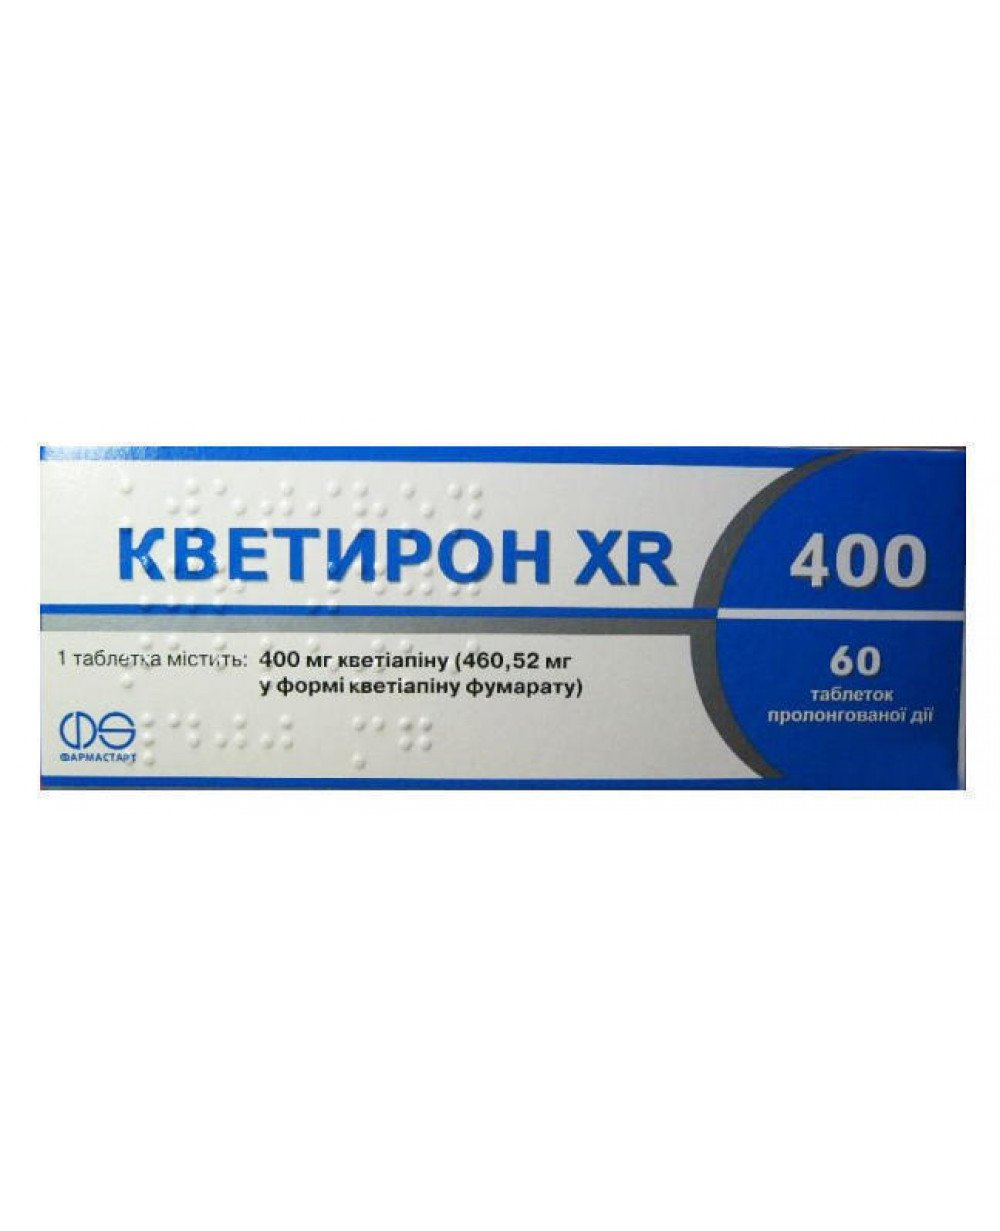 Cvetiron XR 400 (quetiapine) tablets with prolonged release 400 mg. №60